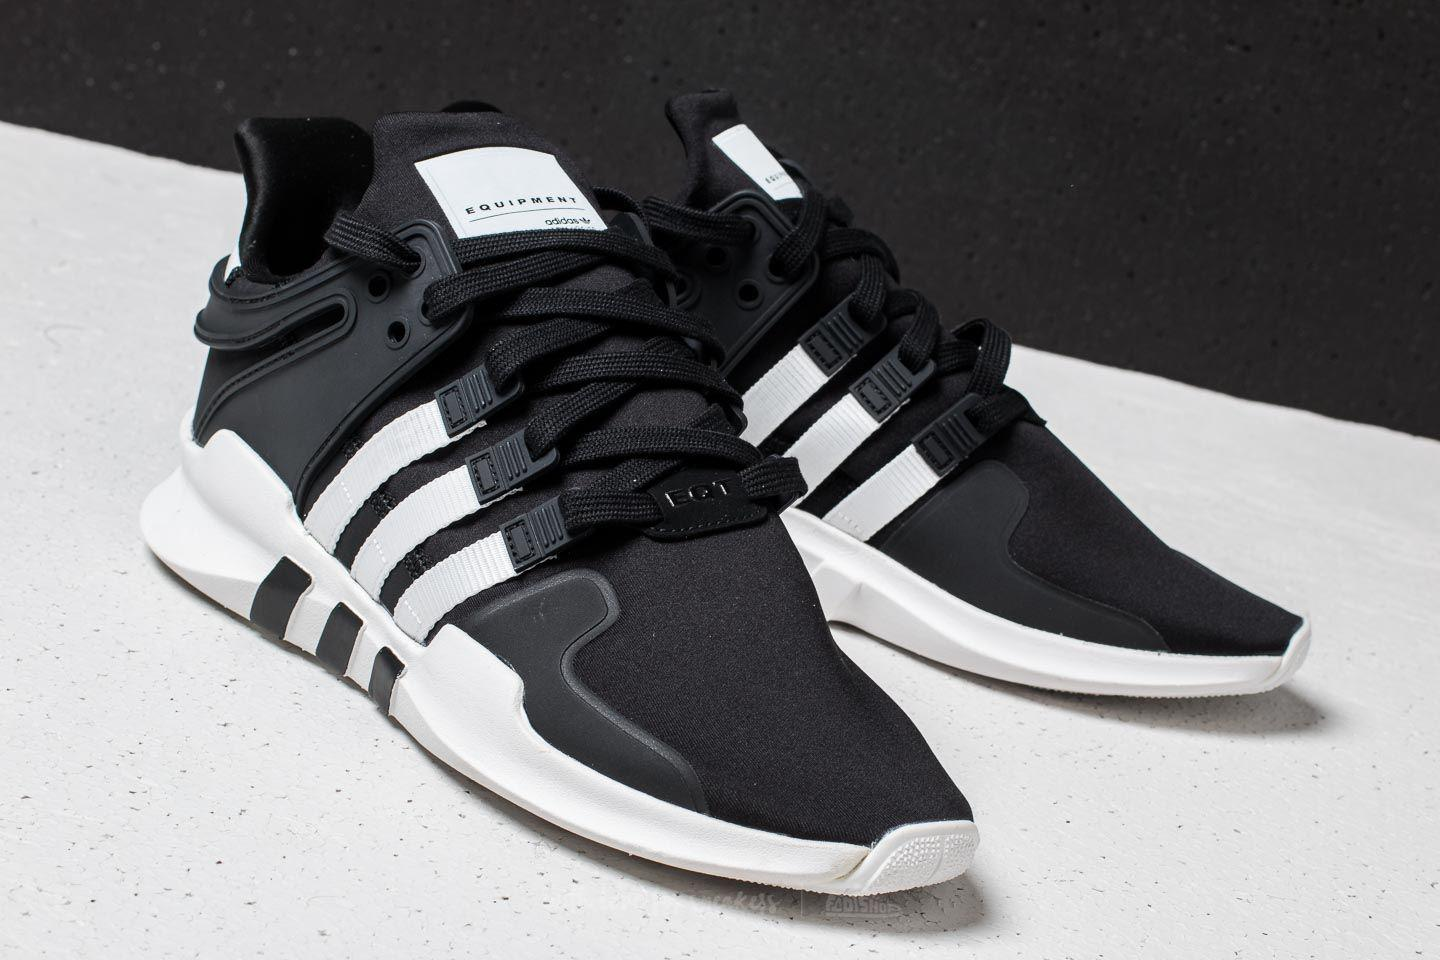 6448bba82 Lyst - adidas Originals Adidas Eqt Support Adv Core Black  Cloud ...